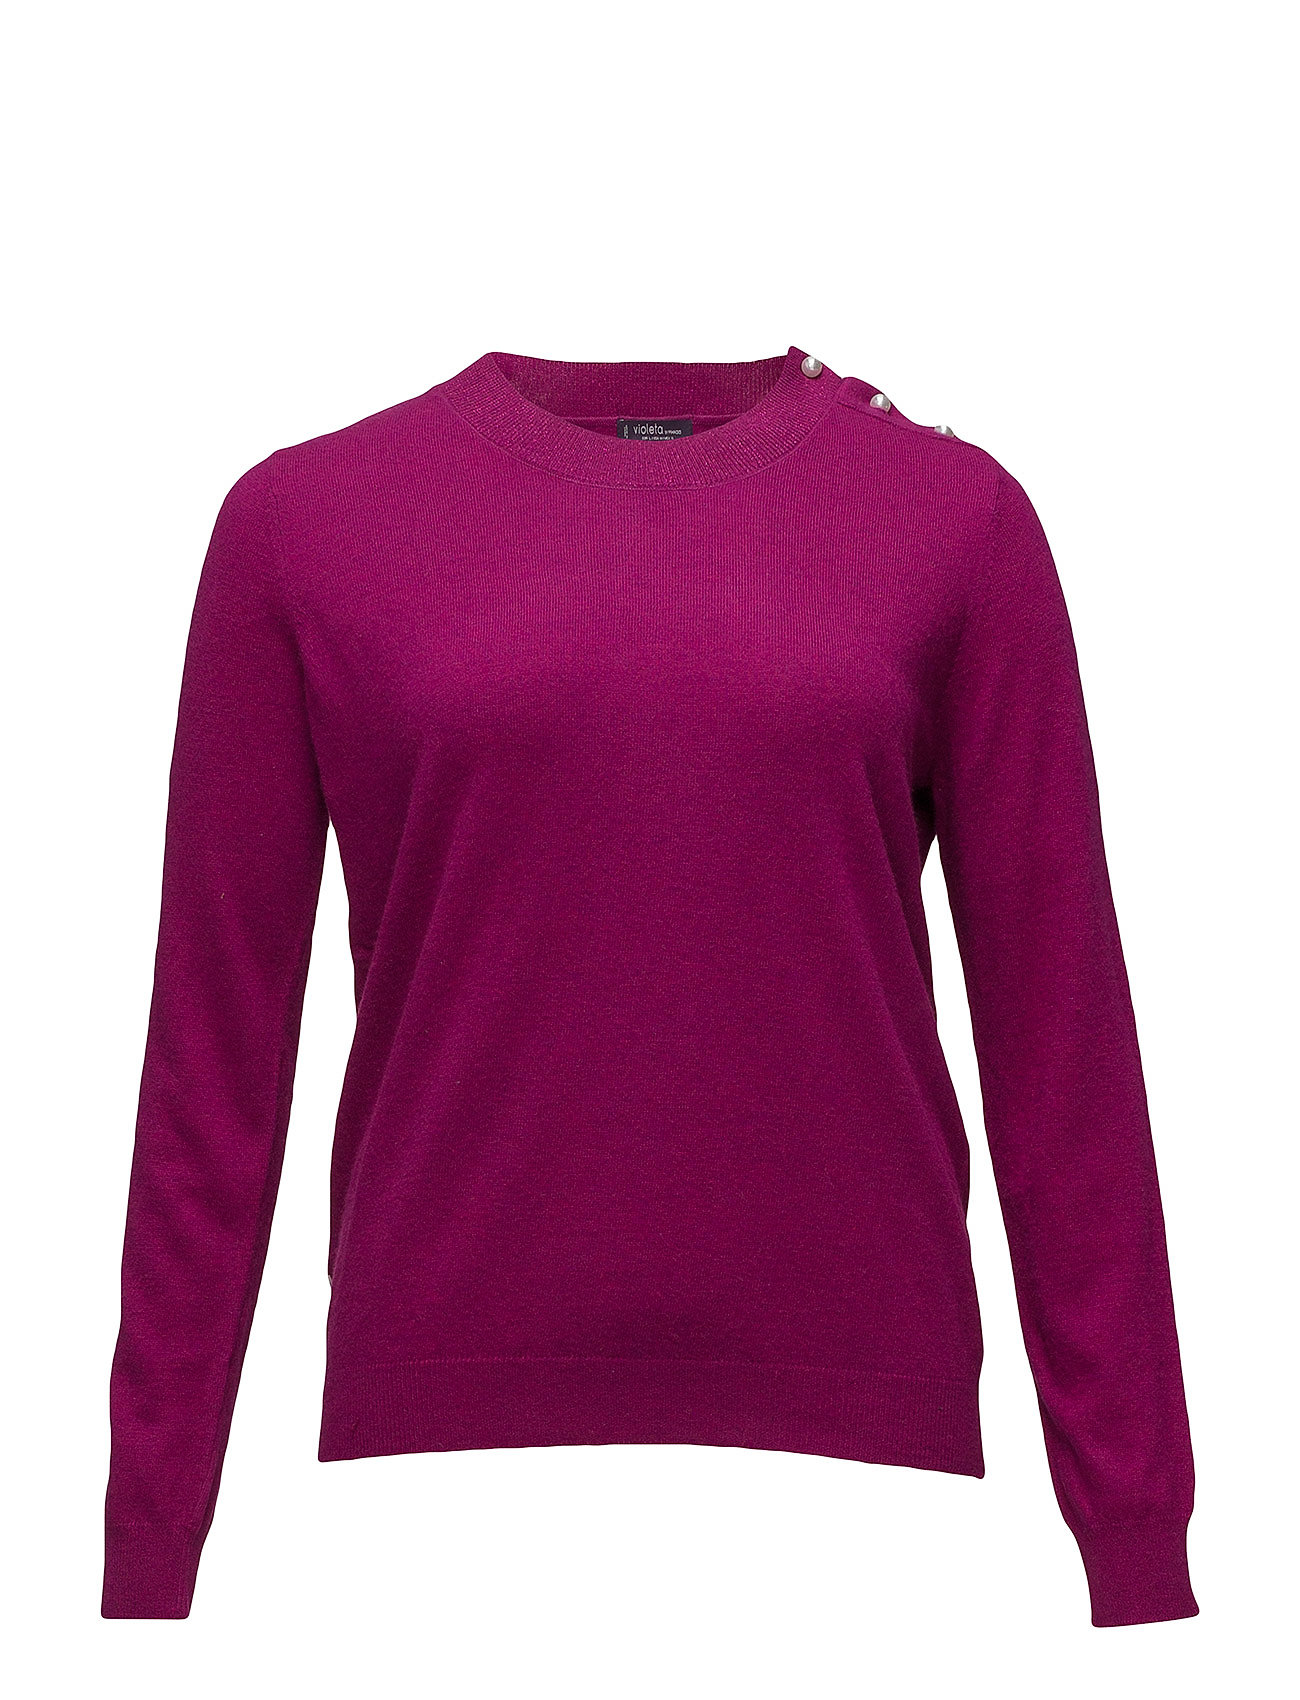 Image of Pearl Embroidery Appliqu Sweater (2778819247)